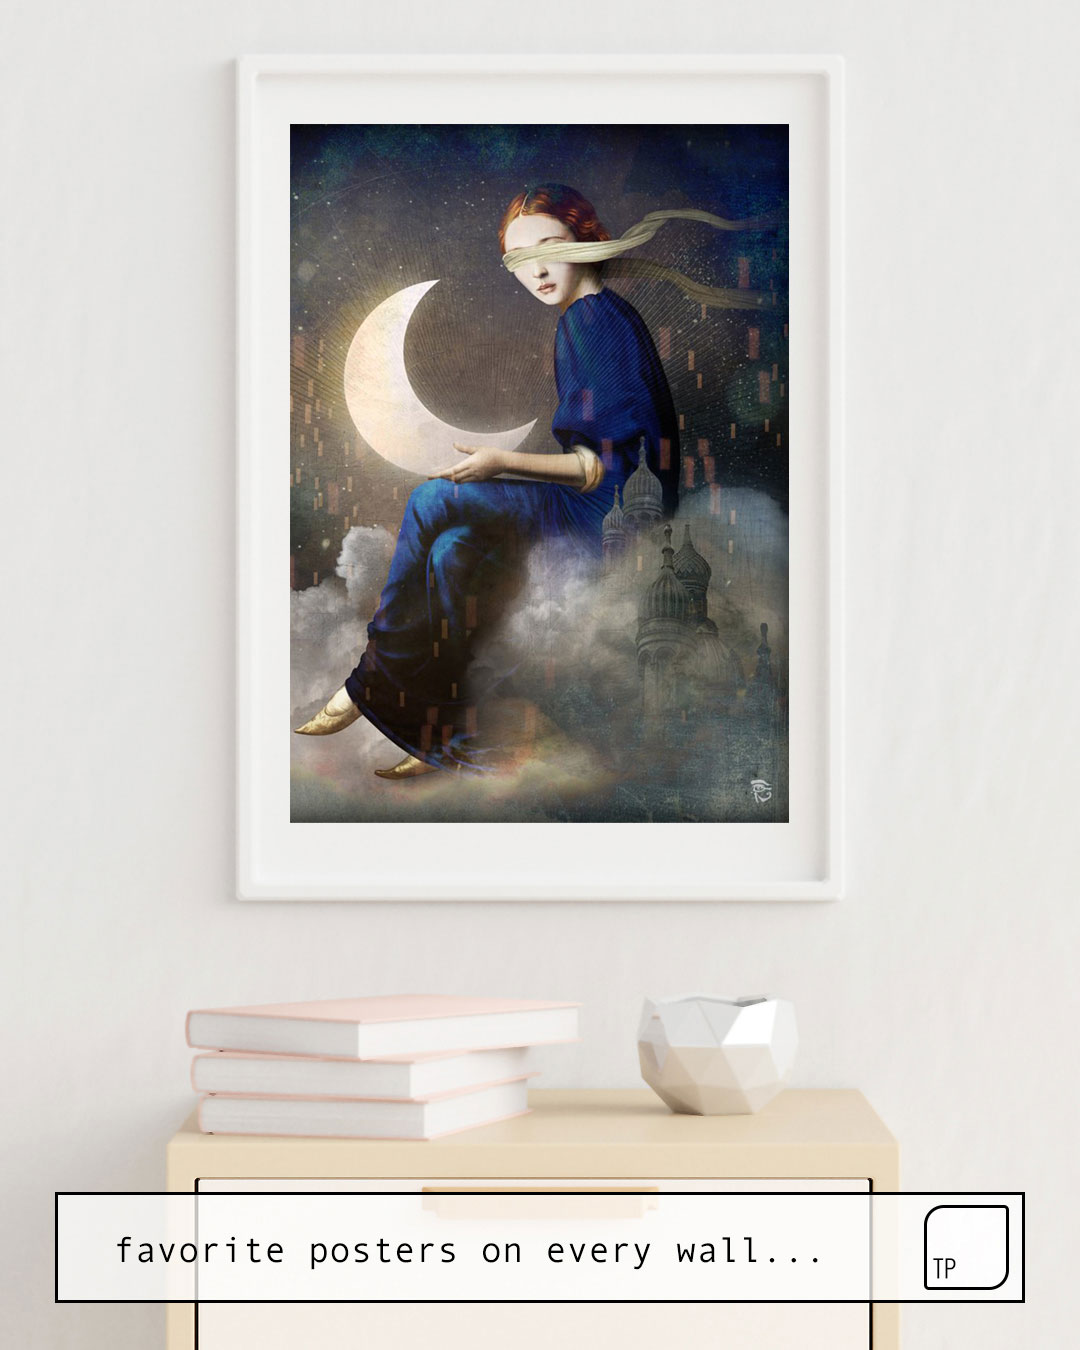 The photo shows an example of furnishing with the motif KINGDOM OF CLOUDS by Christian Schloe as mural